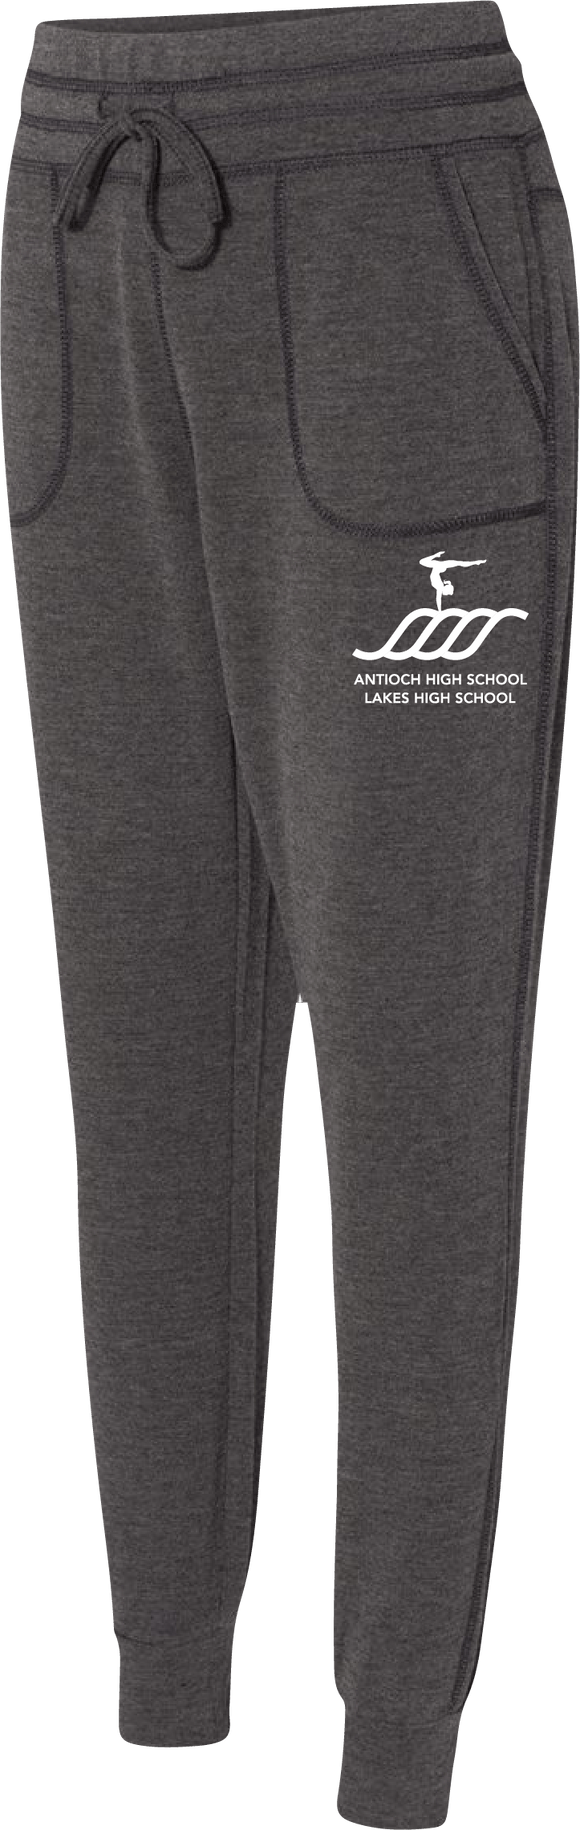 D117 Gymnastics jogger sweatpants